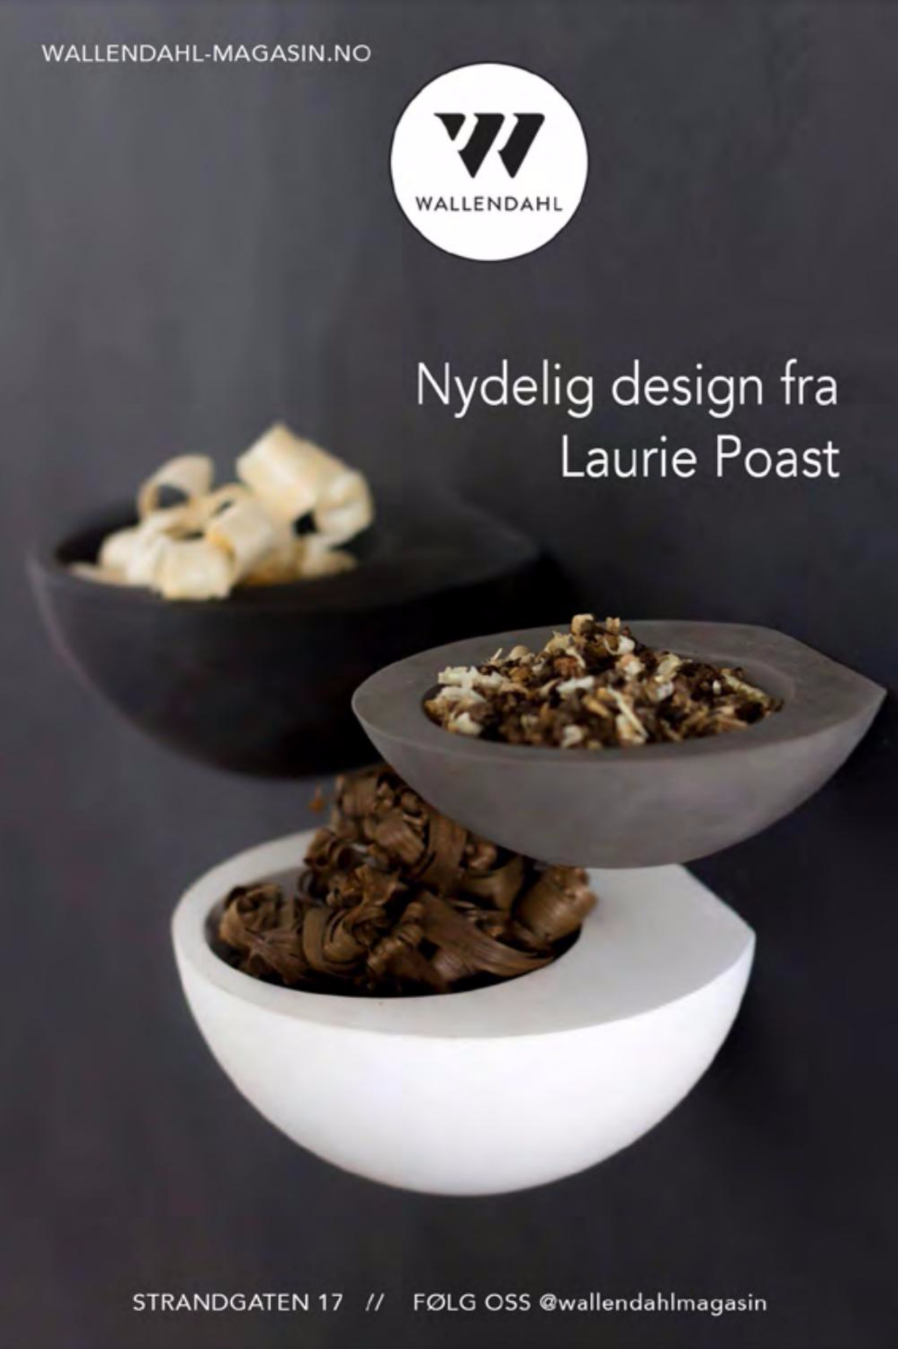 Wall Bowls in Gray, White, and Black available now at Wallendahl Magasin.